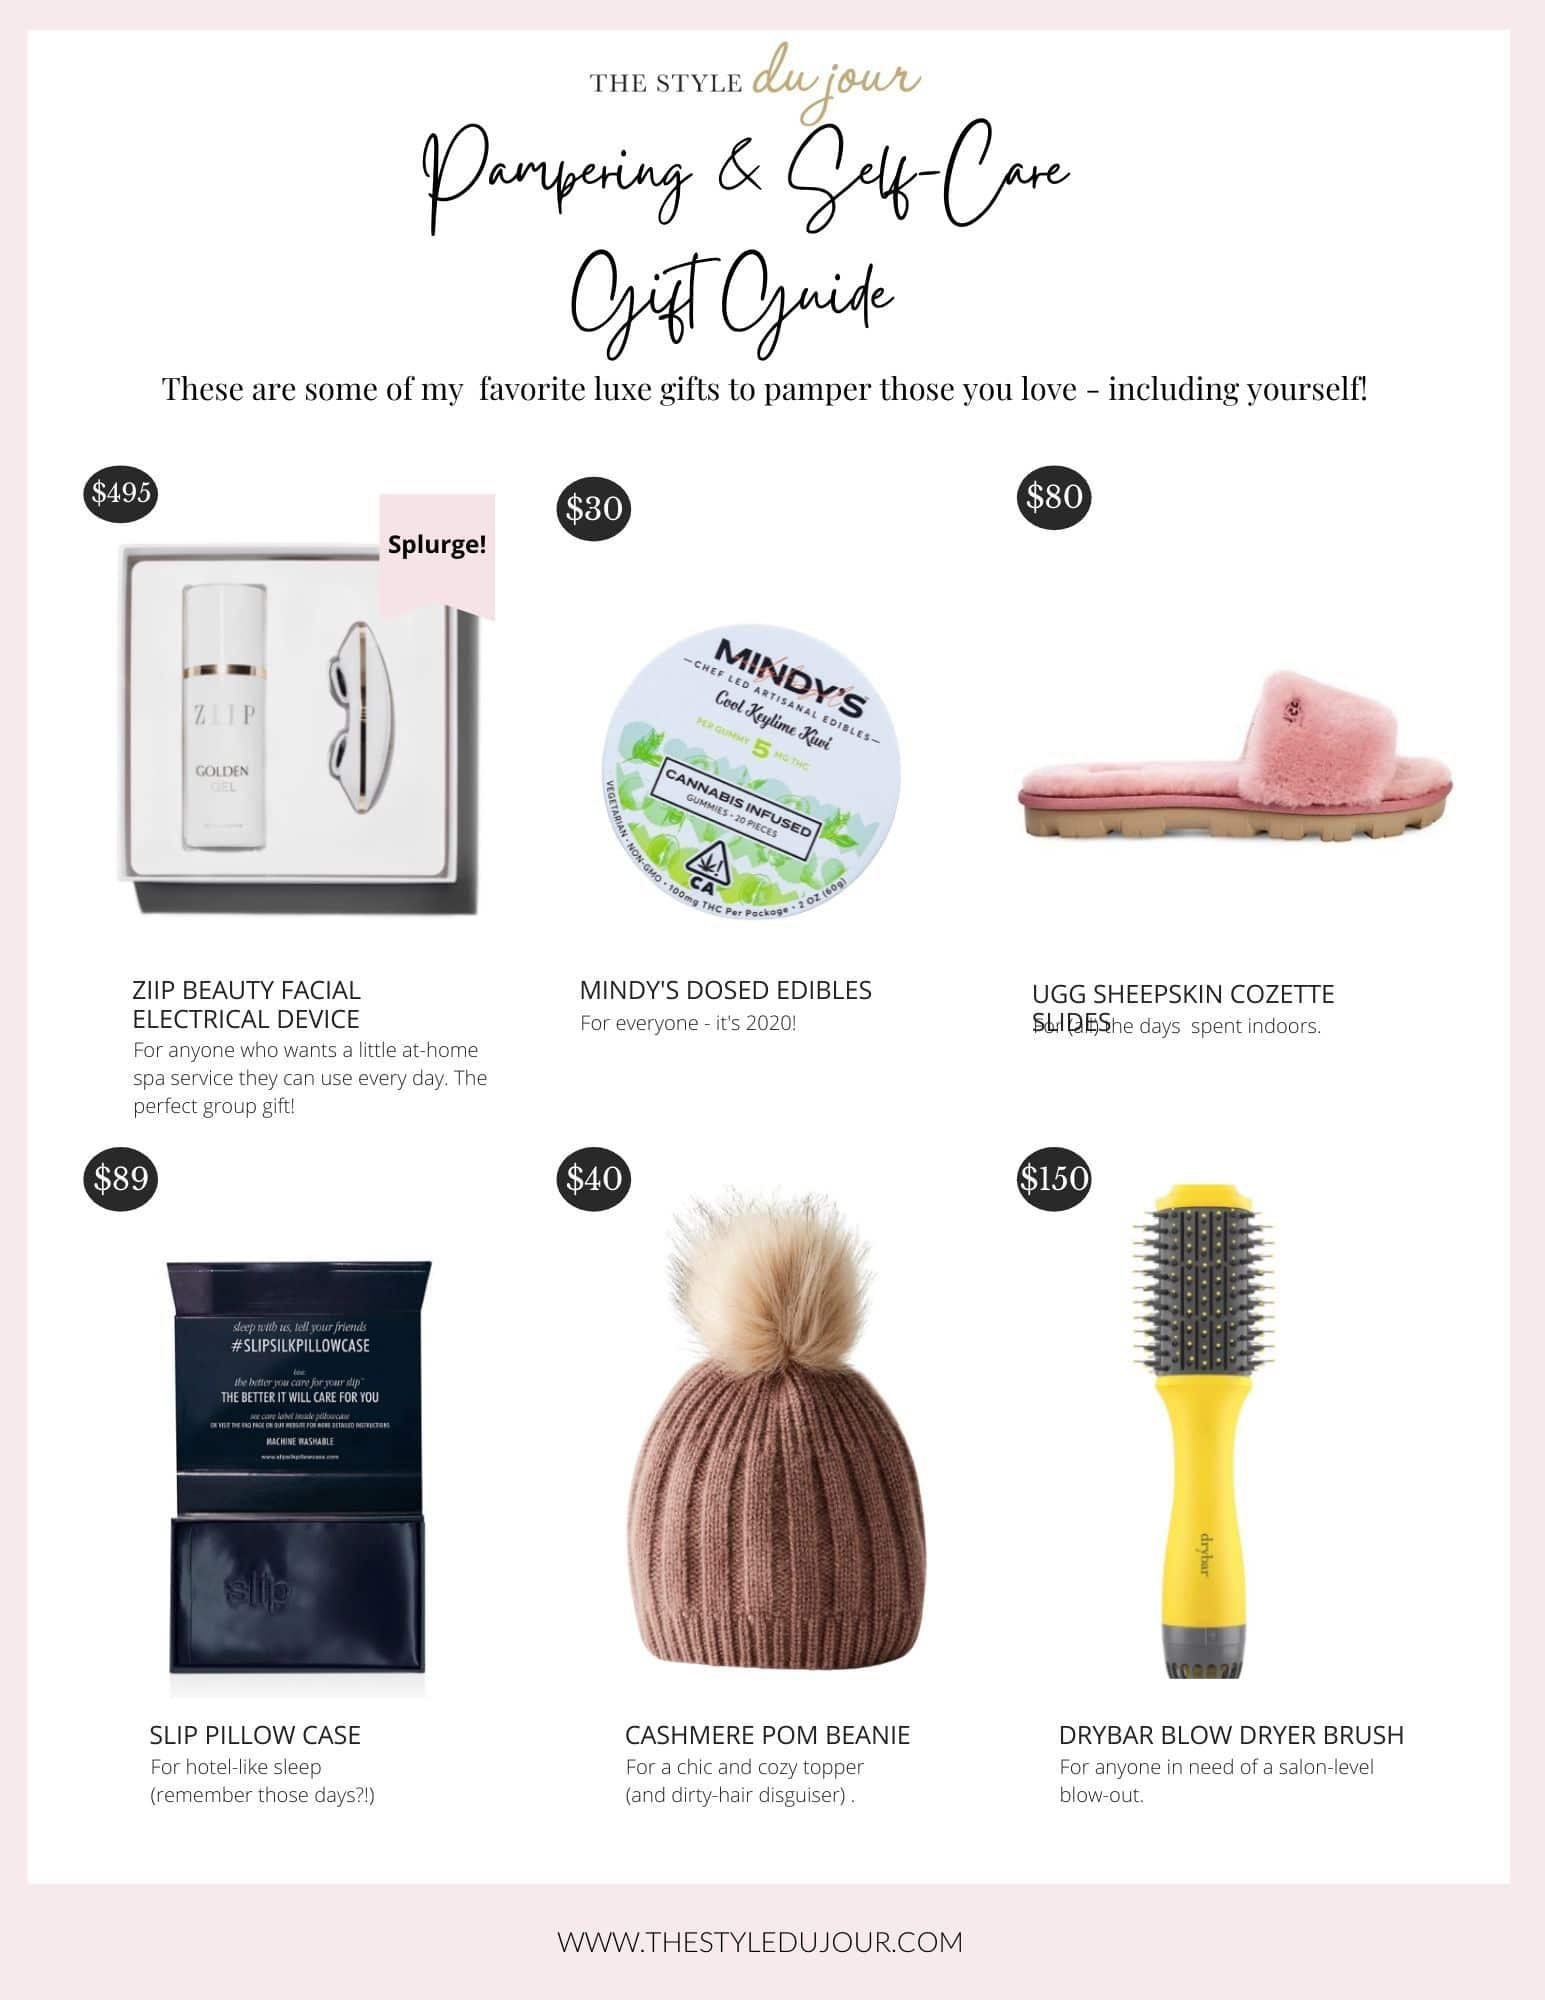 Self-Love Holiday Gift Guide with low to luxe items